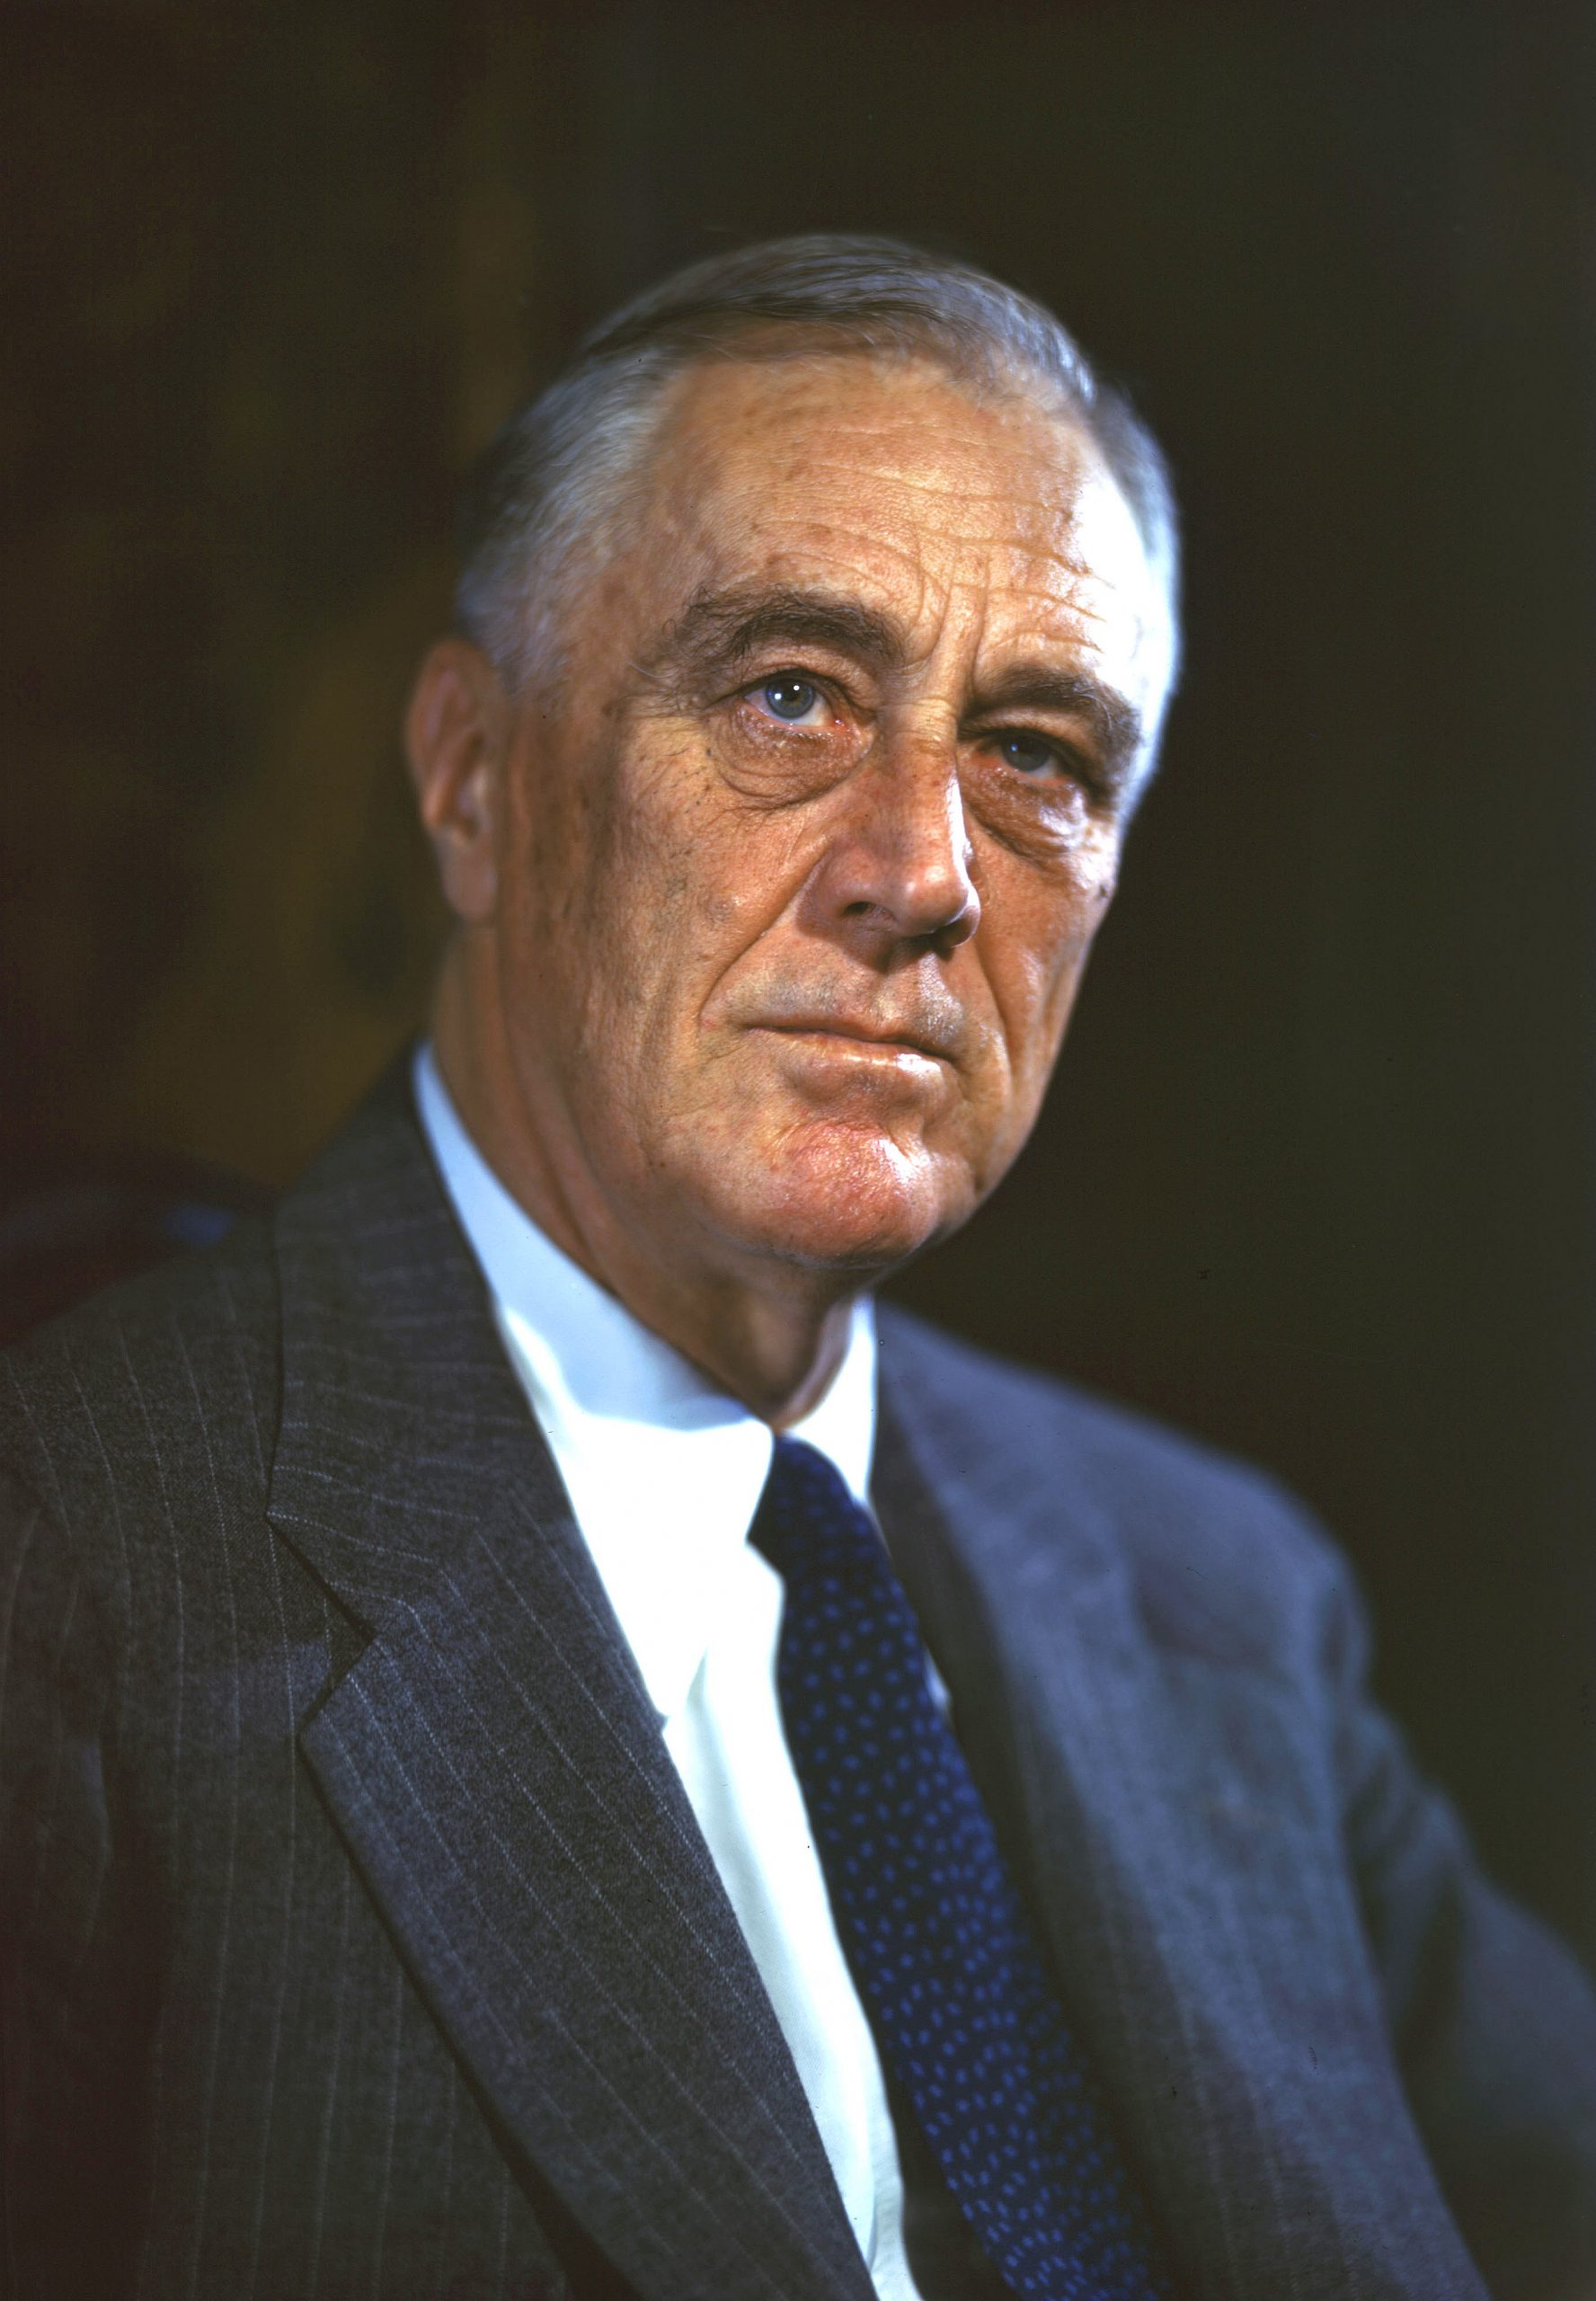 Color portrait of Franklin Delano Roosevelt